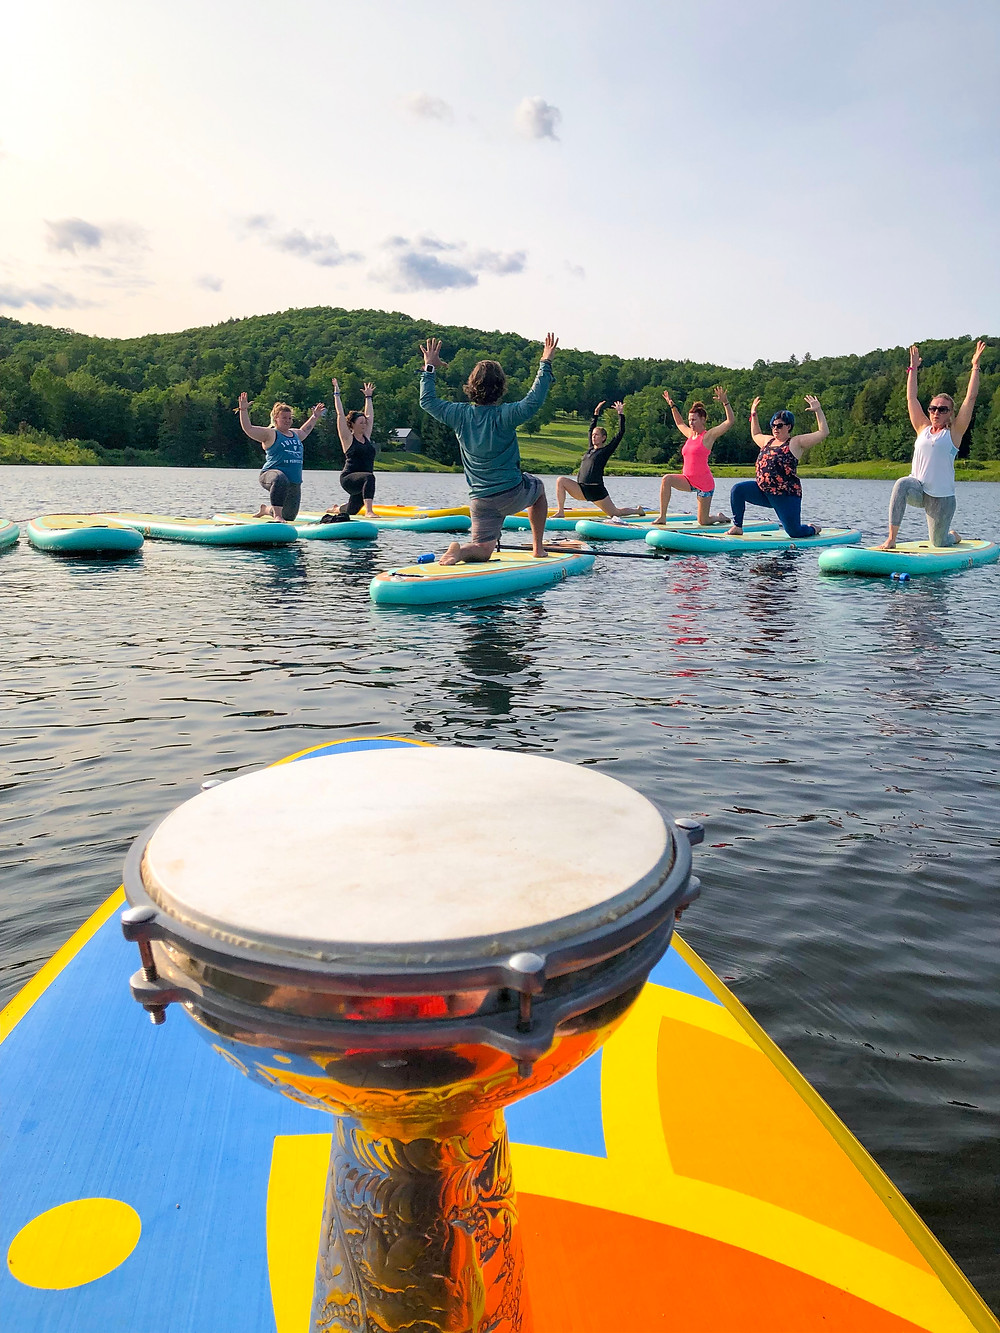 Photo of yoga on the water captured by Druminyasa